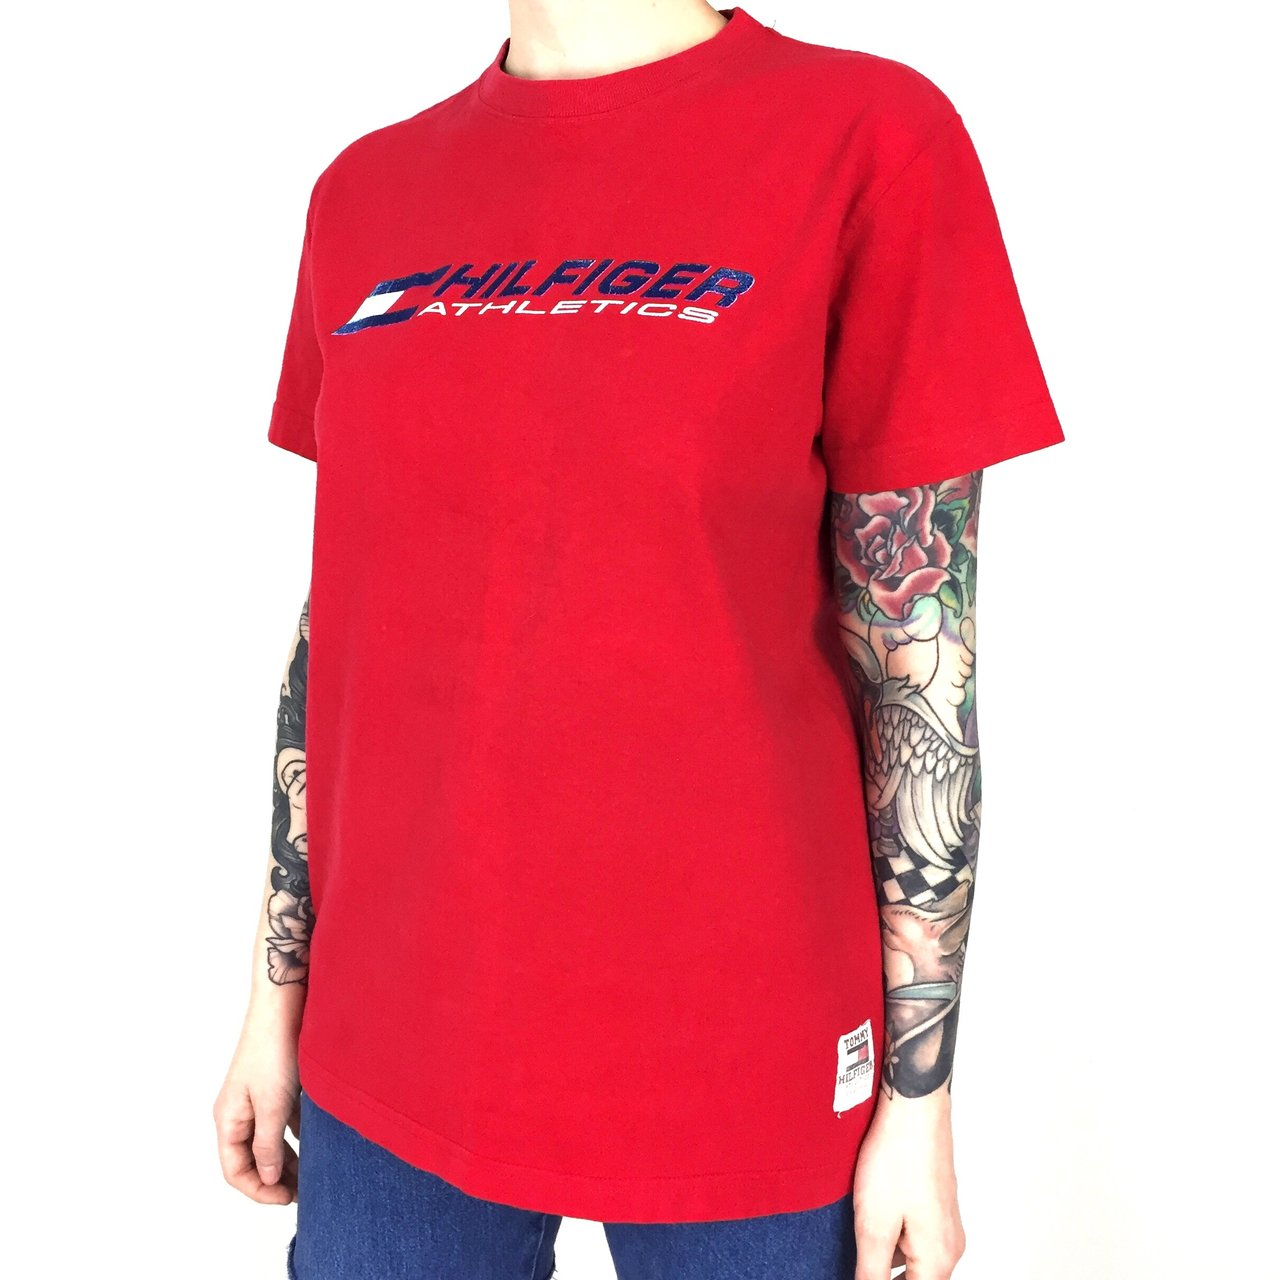 1ac76563 @batcityvintage. 22 hours ago. McDonough, United States. 🔥 Women's Vintage  90s Tommy Hilfiger Athletics flag logo red graphic tee ...